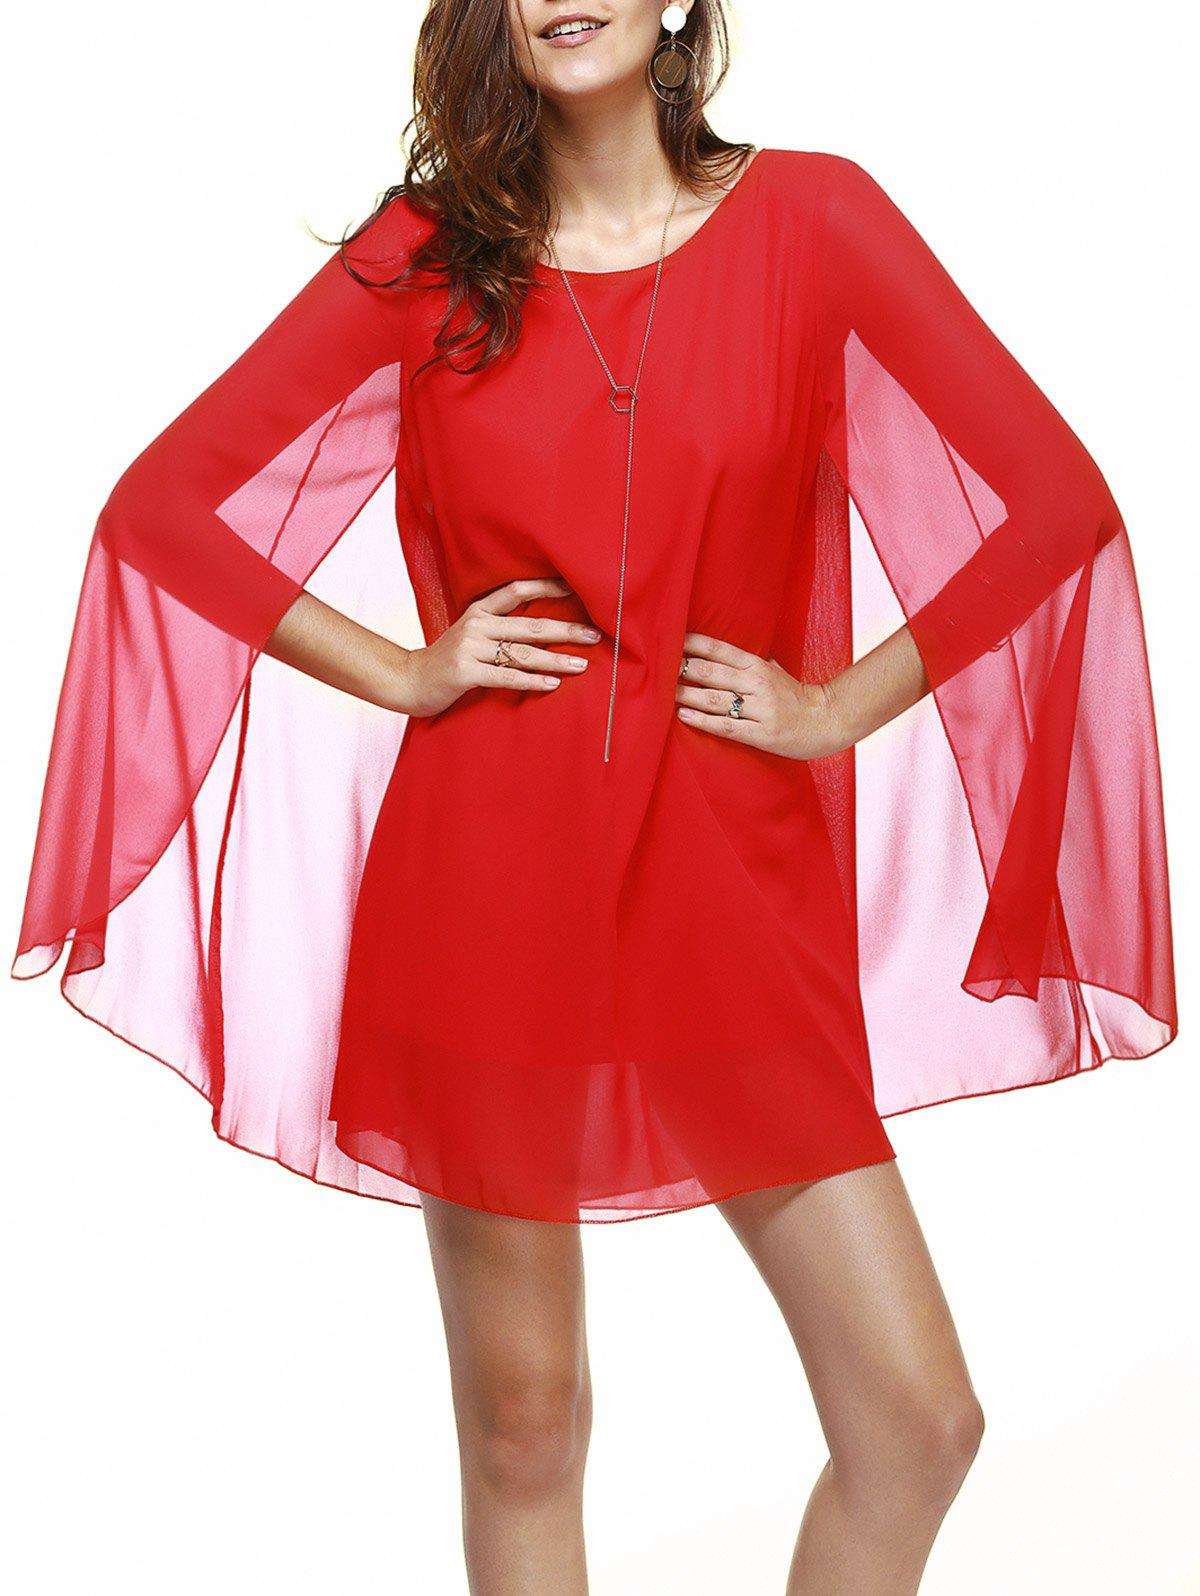 Trendy Jewel Neck Chiffon Red Dress For Women - RED XL